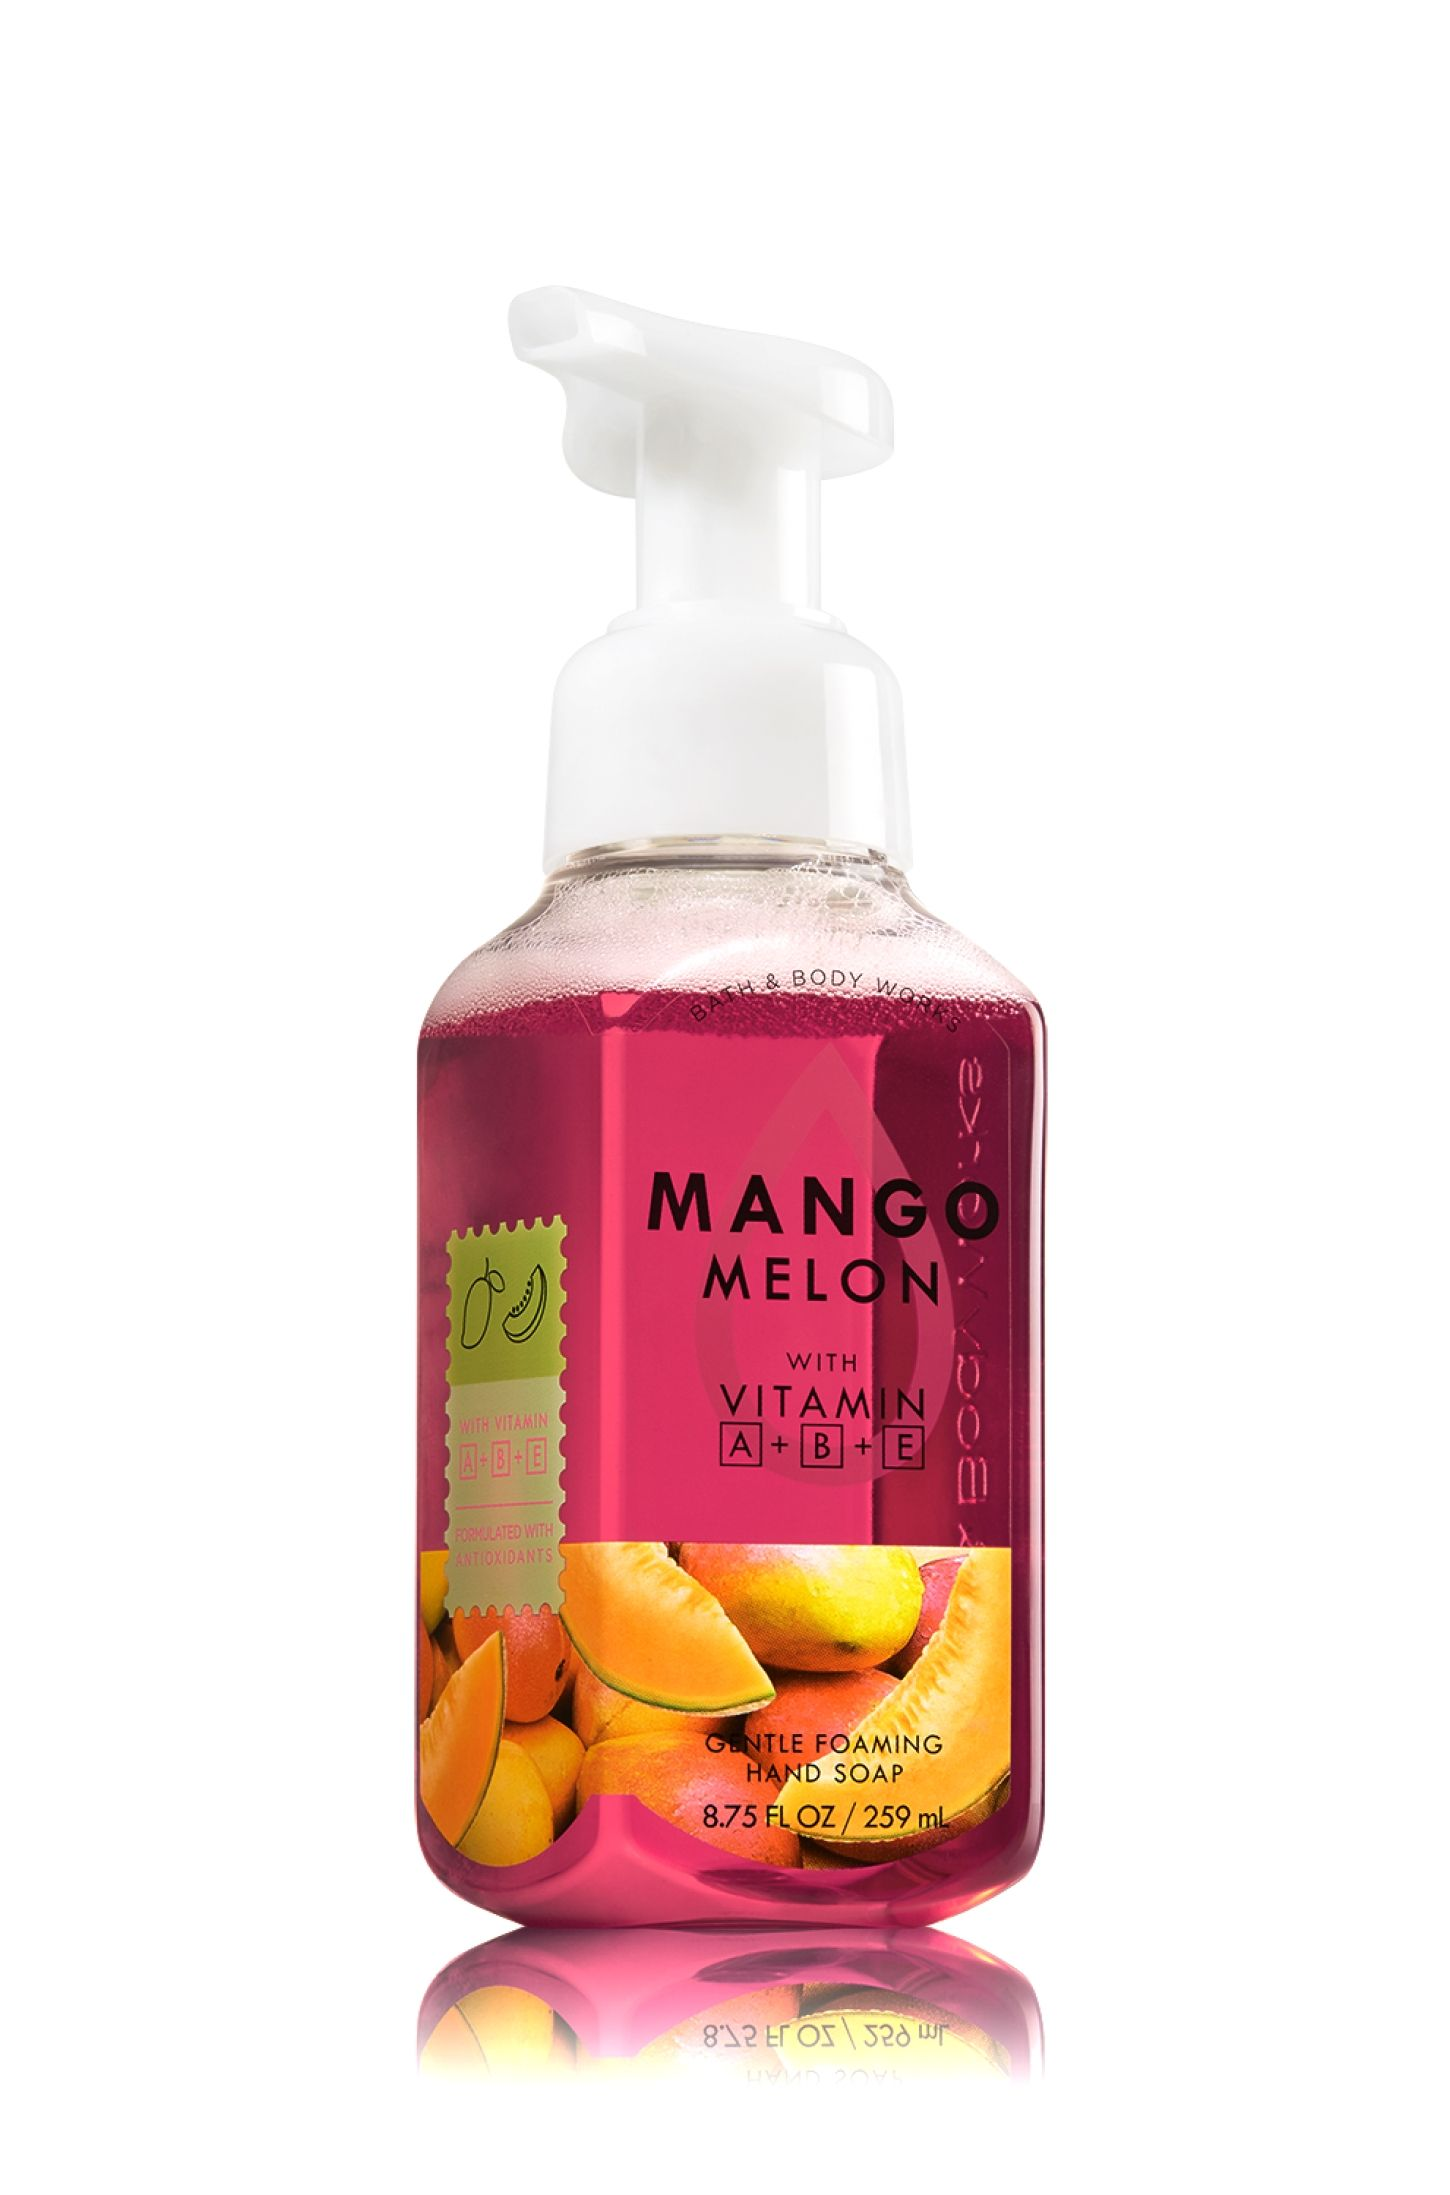 Mango Melon Gentle Foaming Hand Soap Soap Sanitizer Bath